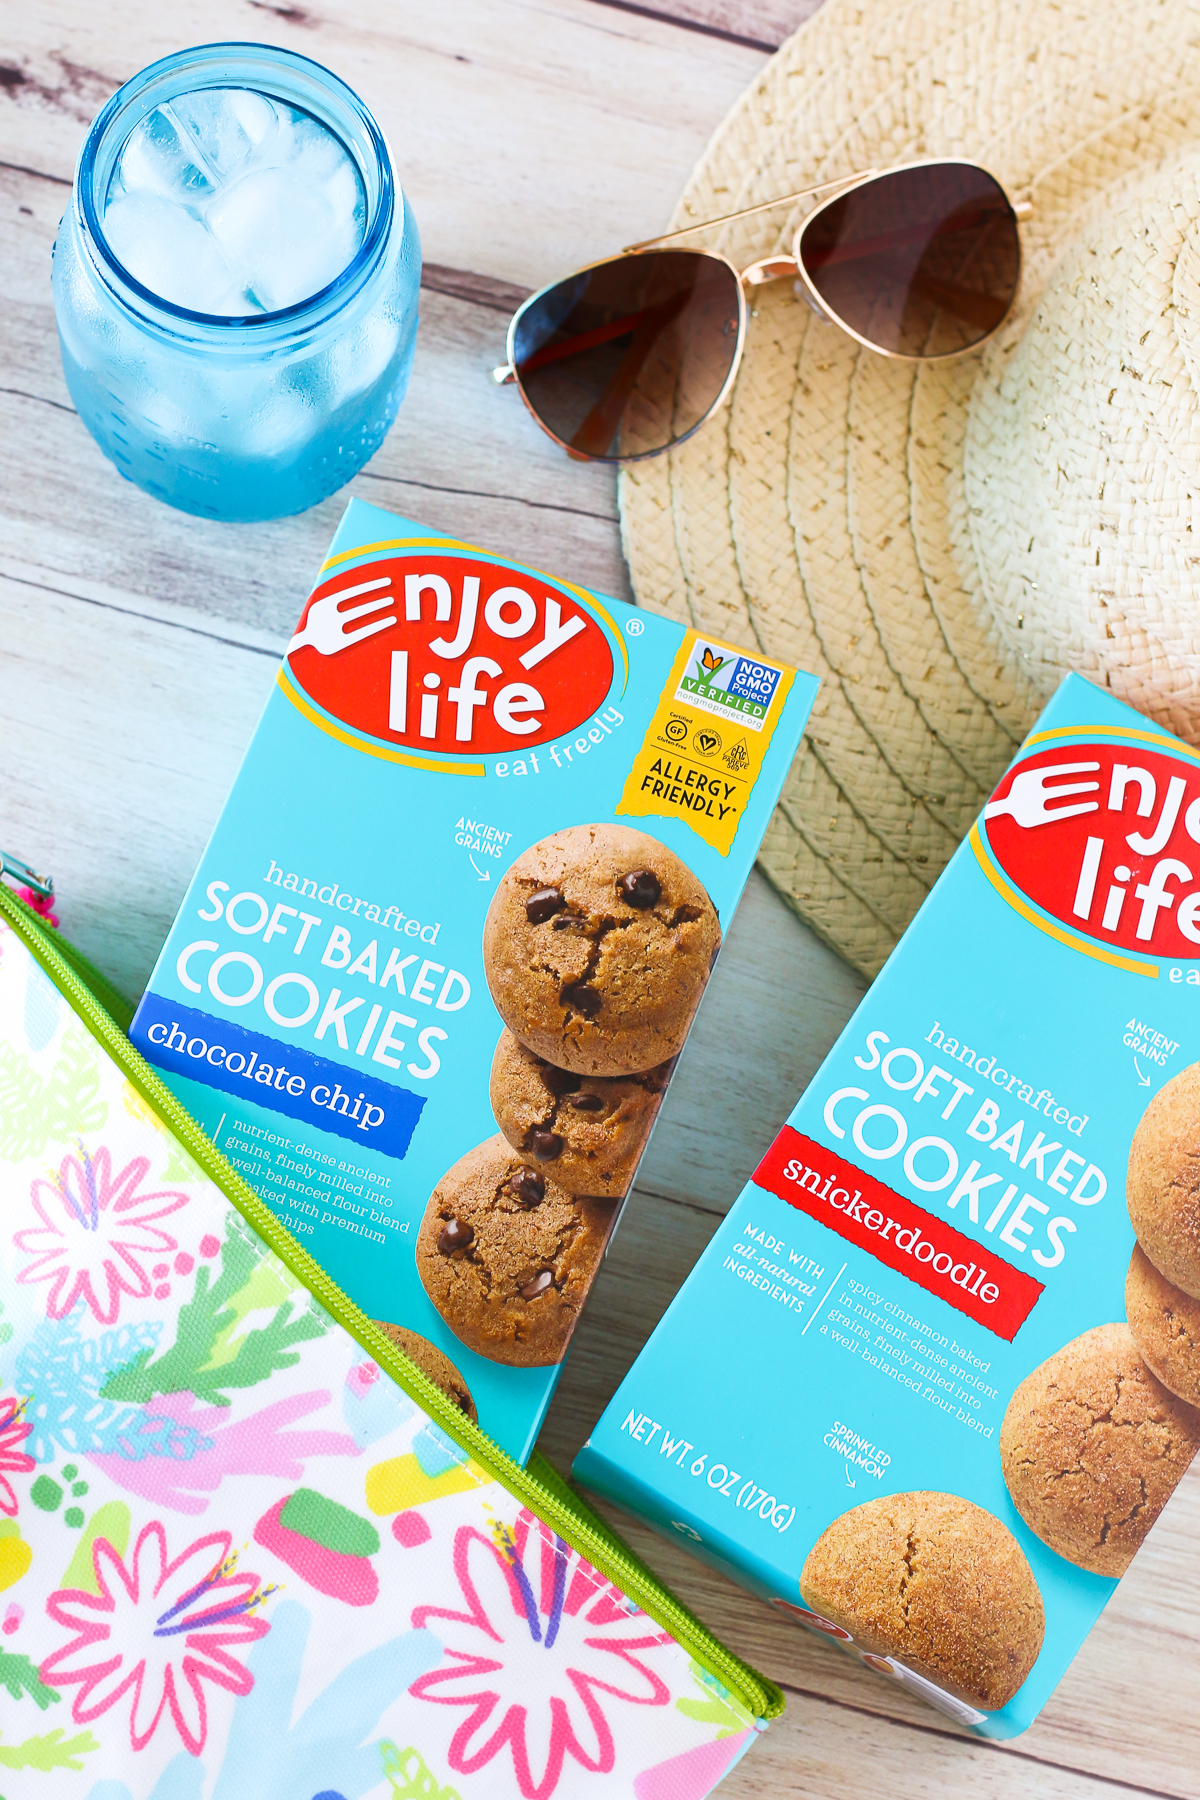 Spring into Summer with Enjoy Life. For a trip to the beach or an afternoon at the pool, be sure to pack some allergen free snacks!